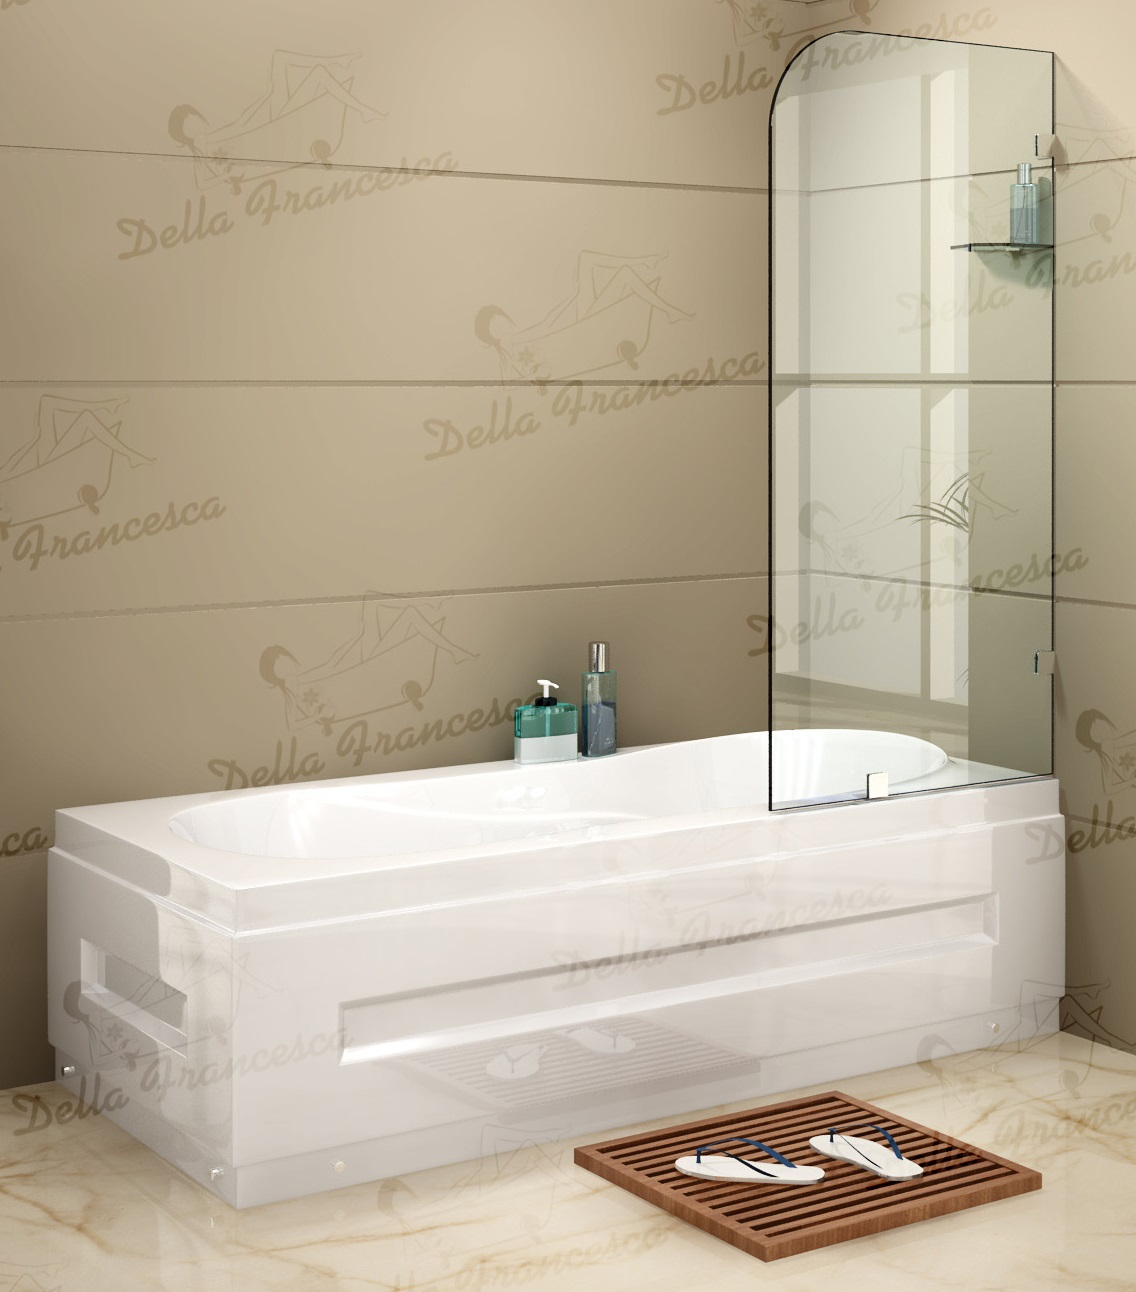 700 x 1450mm Frameless Bath Panel 10mm Glass Shower Screen By Della Francesca  Z2446